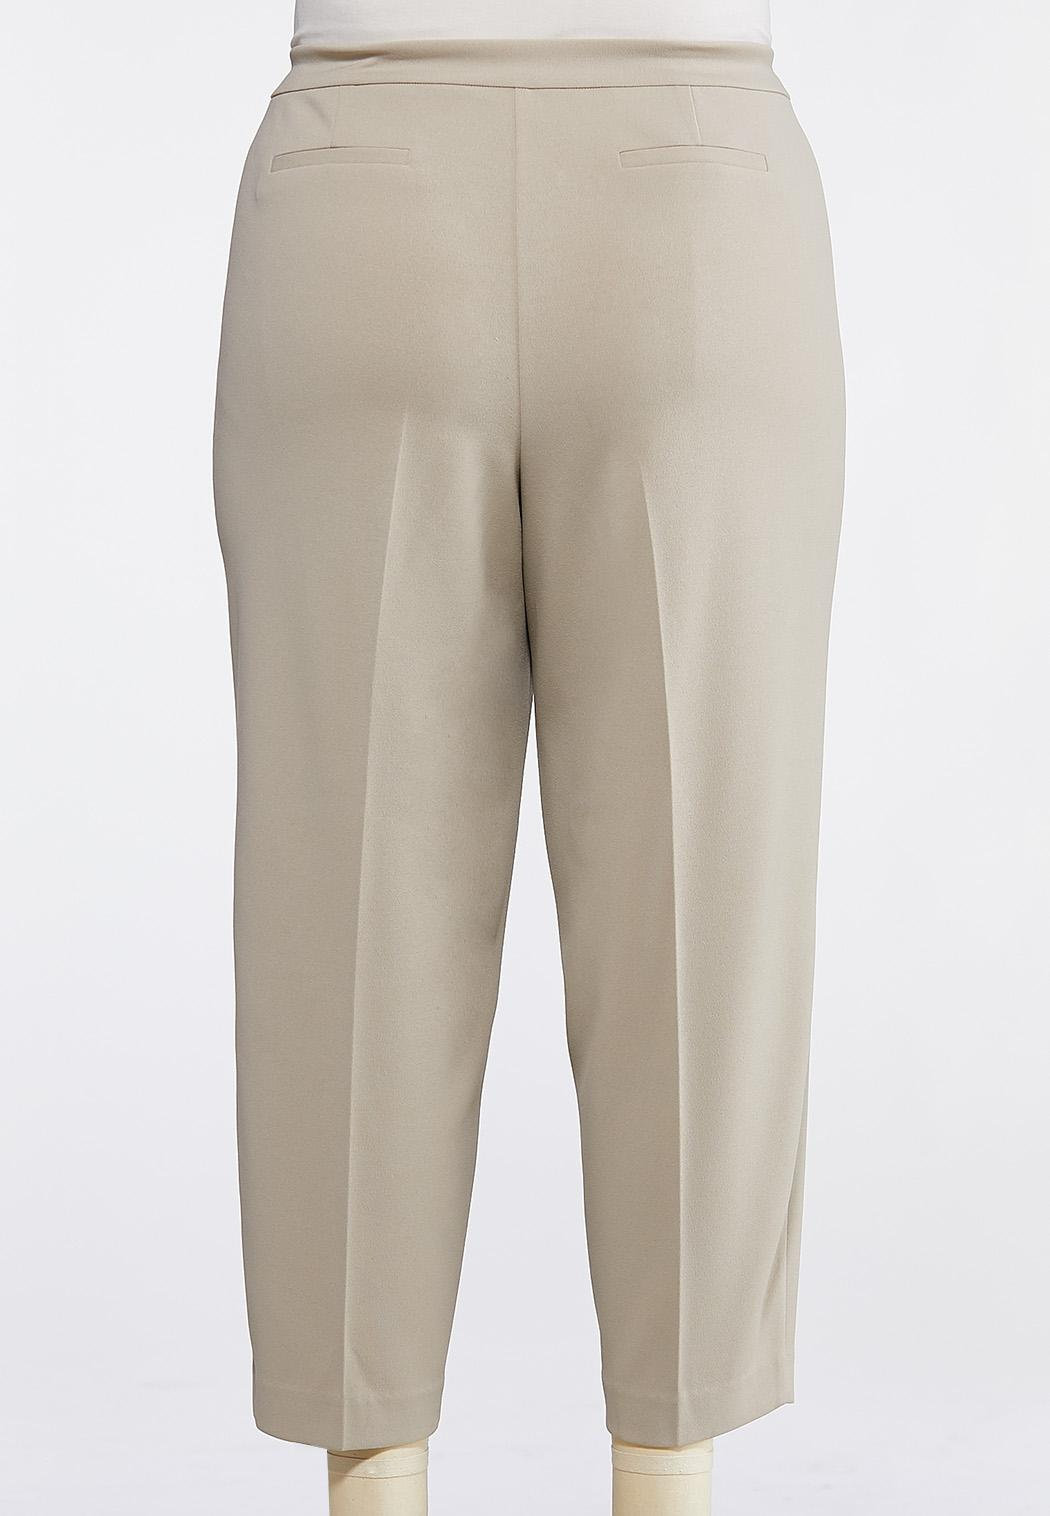 Plus Size Solid Pull-On Pants (Item #43820480)